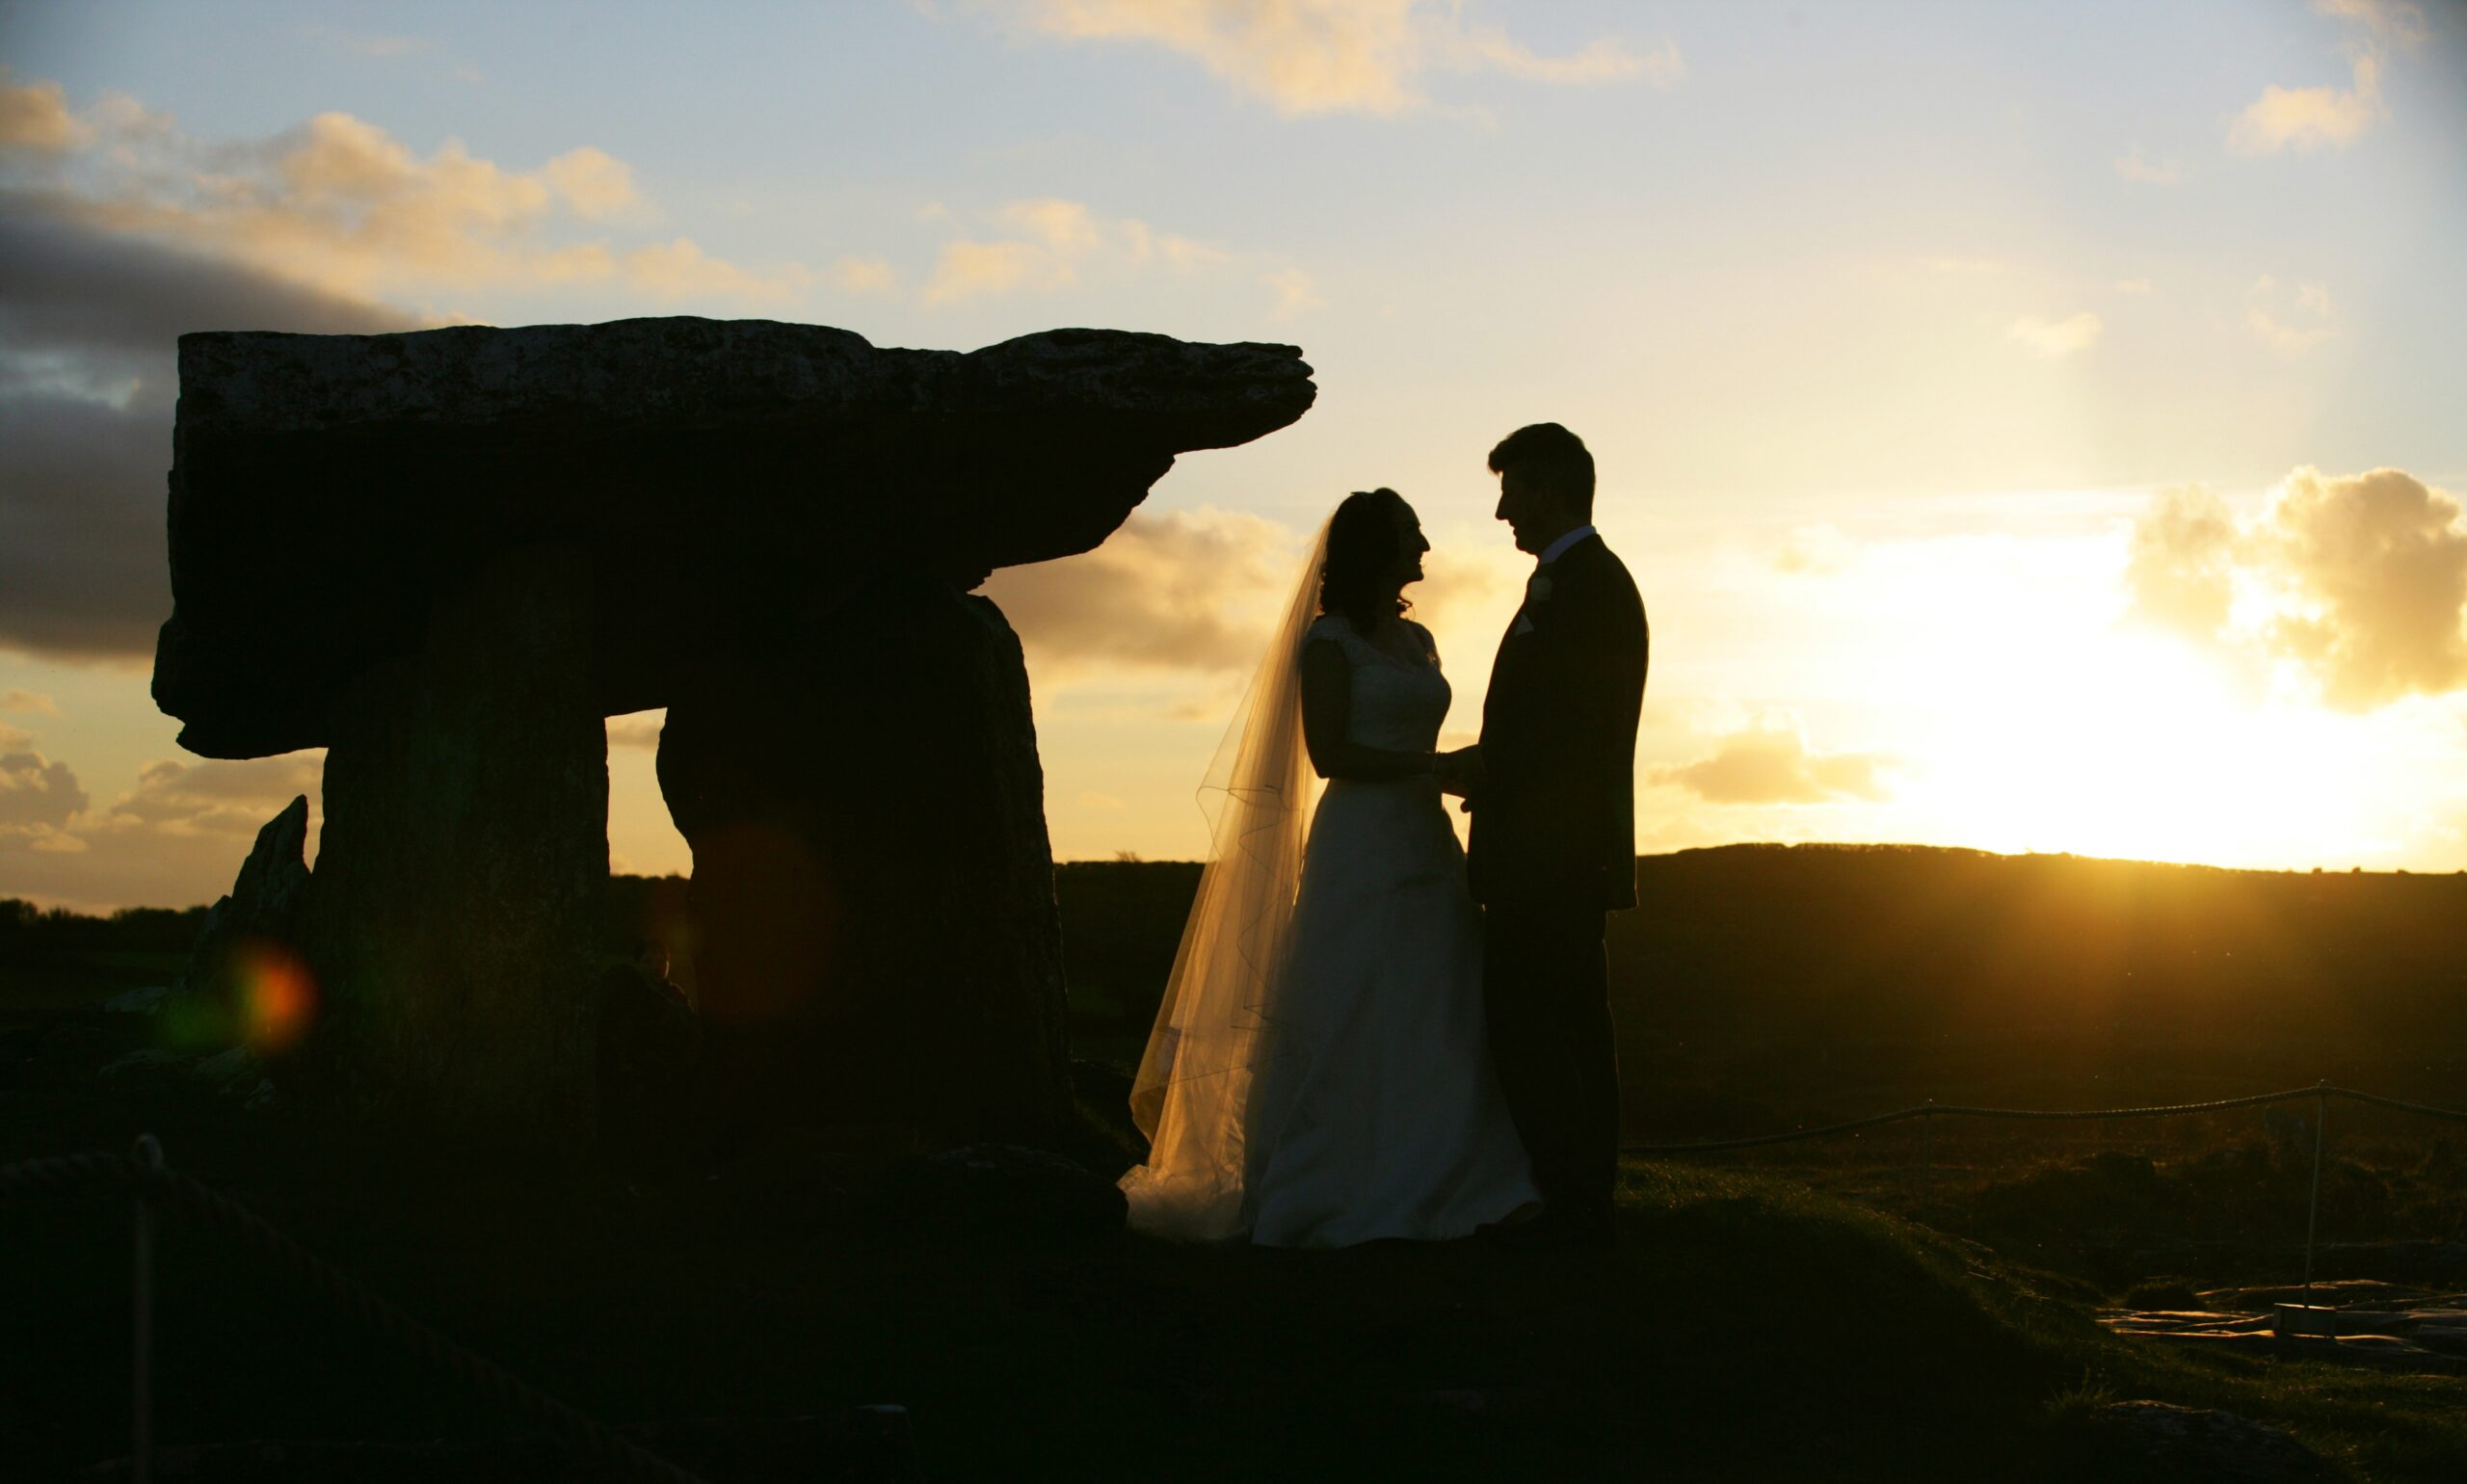 Can I get legally married in Ireland? - Co-ordination Made Easy. co-me.net